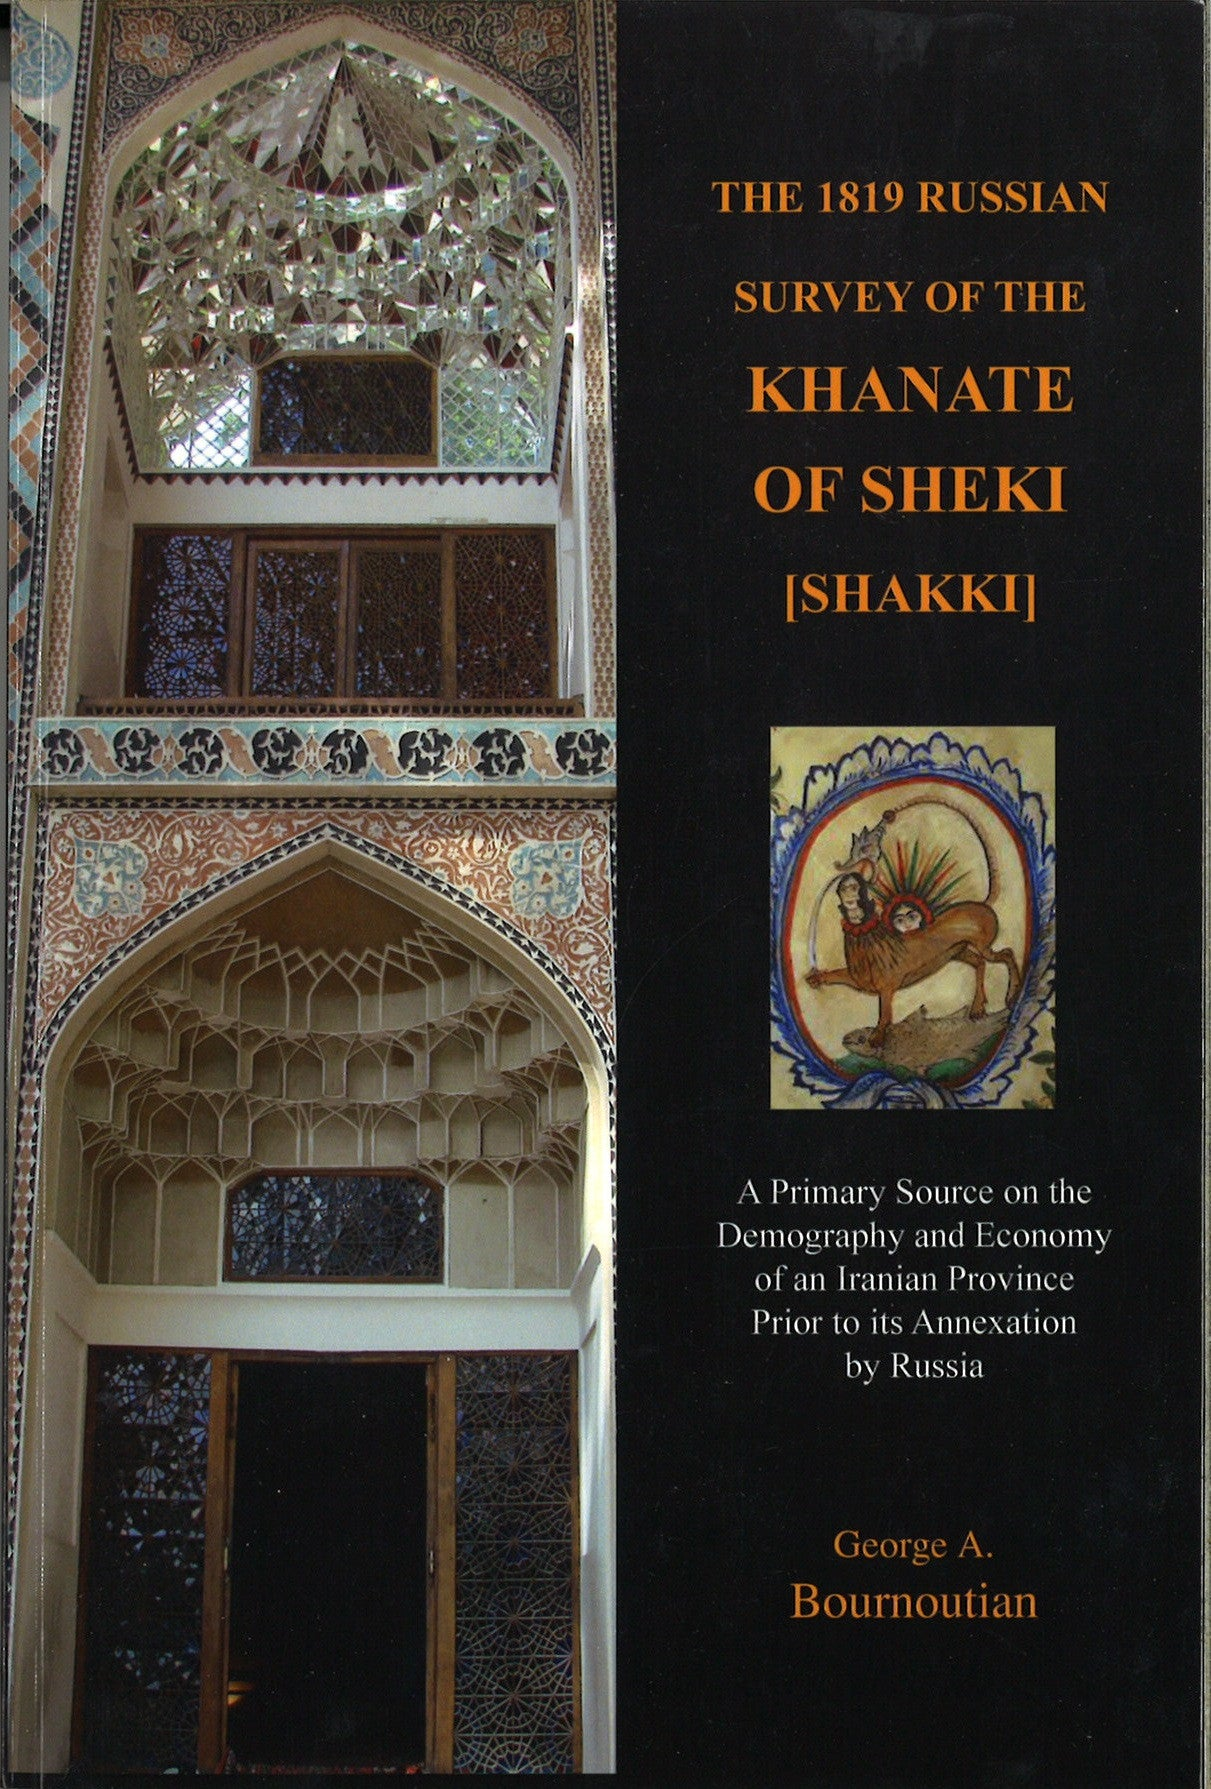 1819 RUSSIAN SURVEY OF THE KHANATE OF SHEKI [SHAKKI]